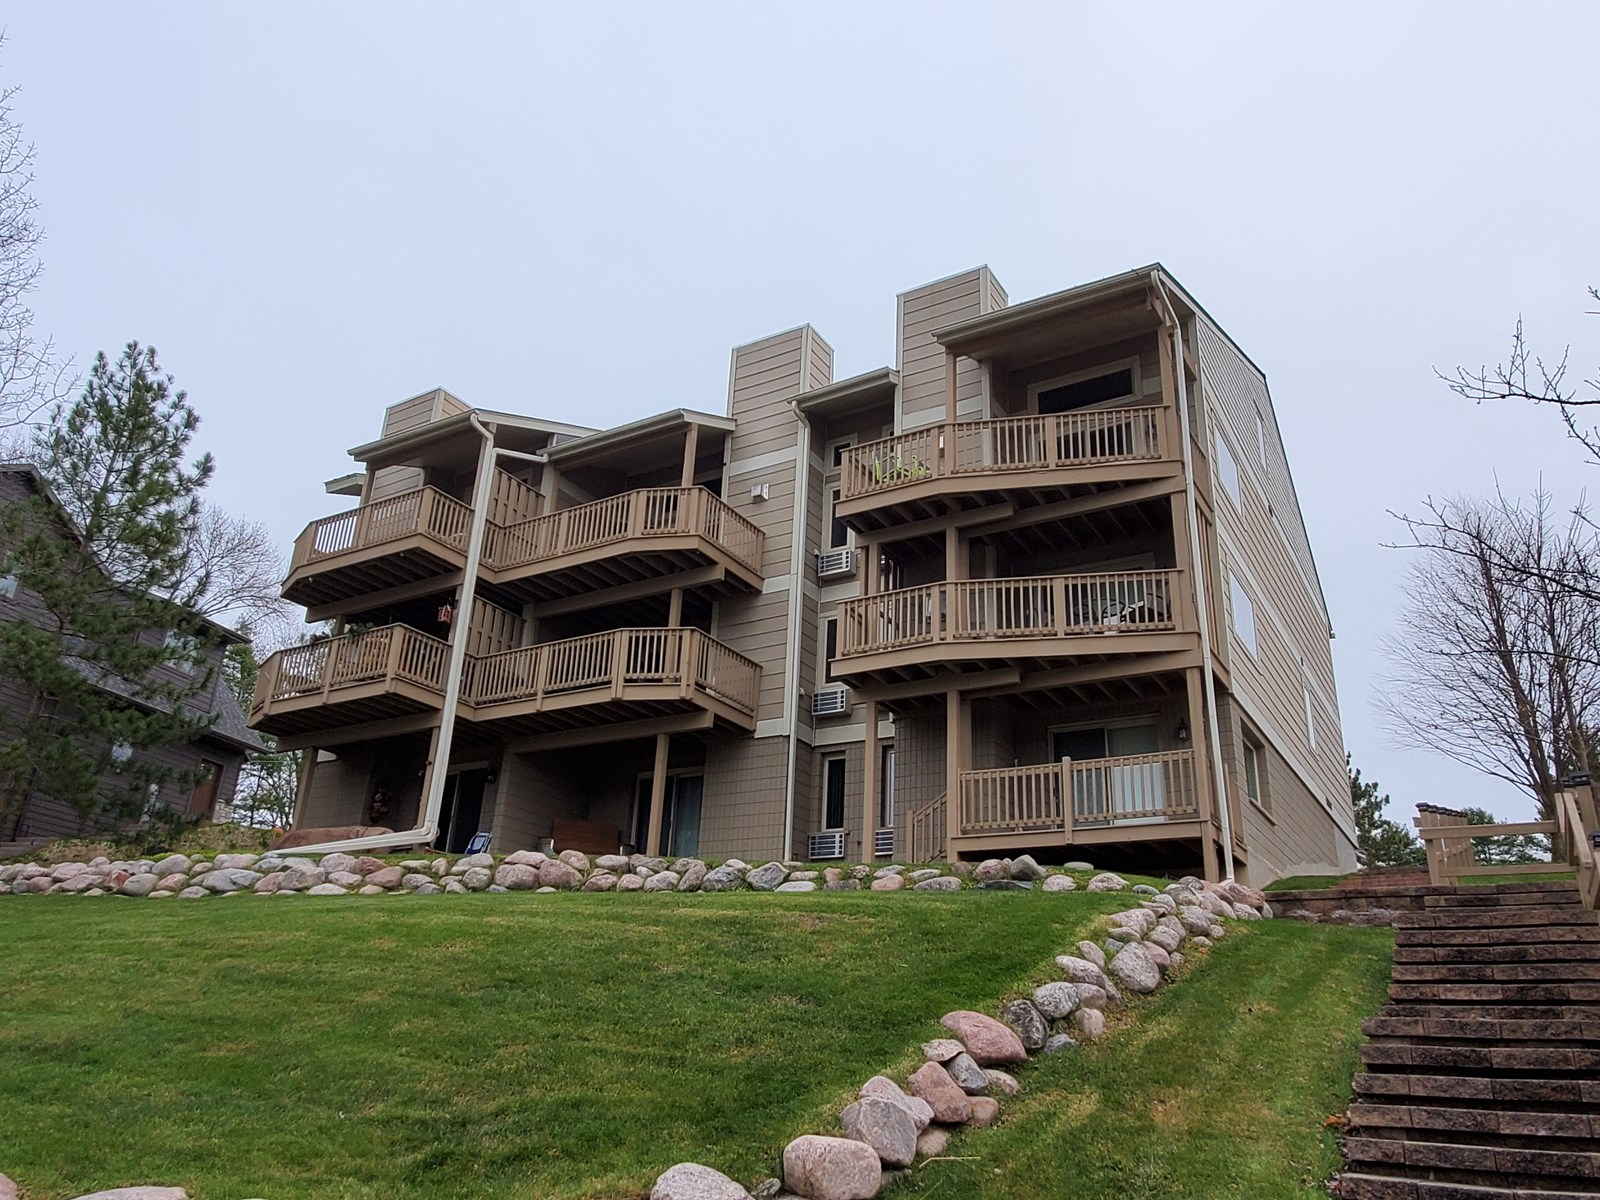 Condo For Sale on the Chain O' Lakes in Waupaca, WI